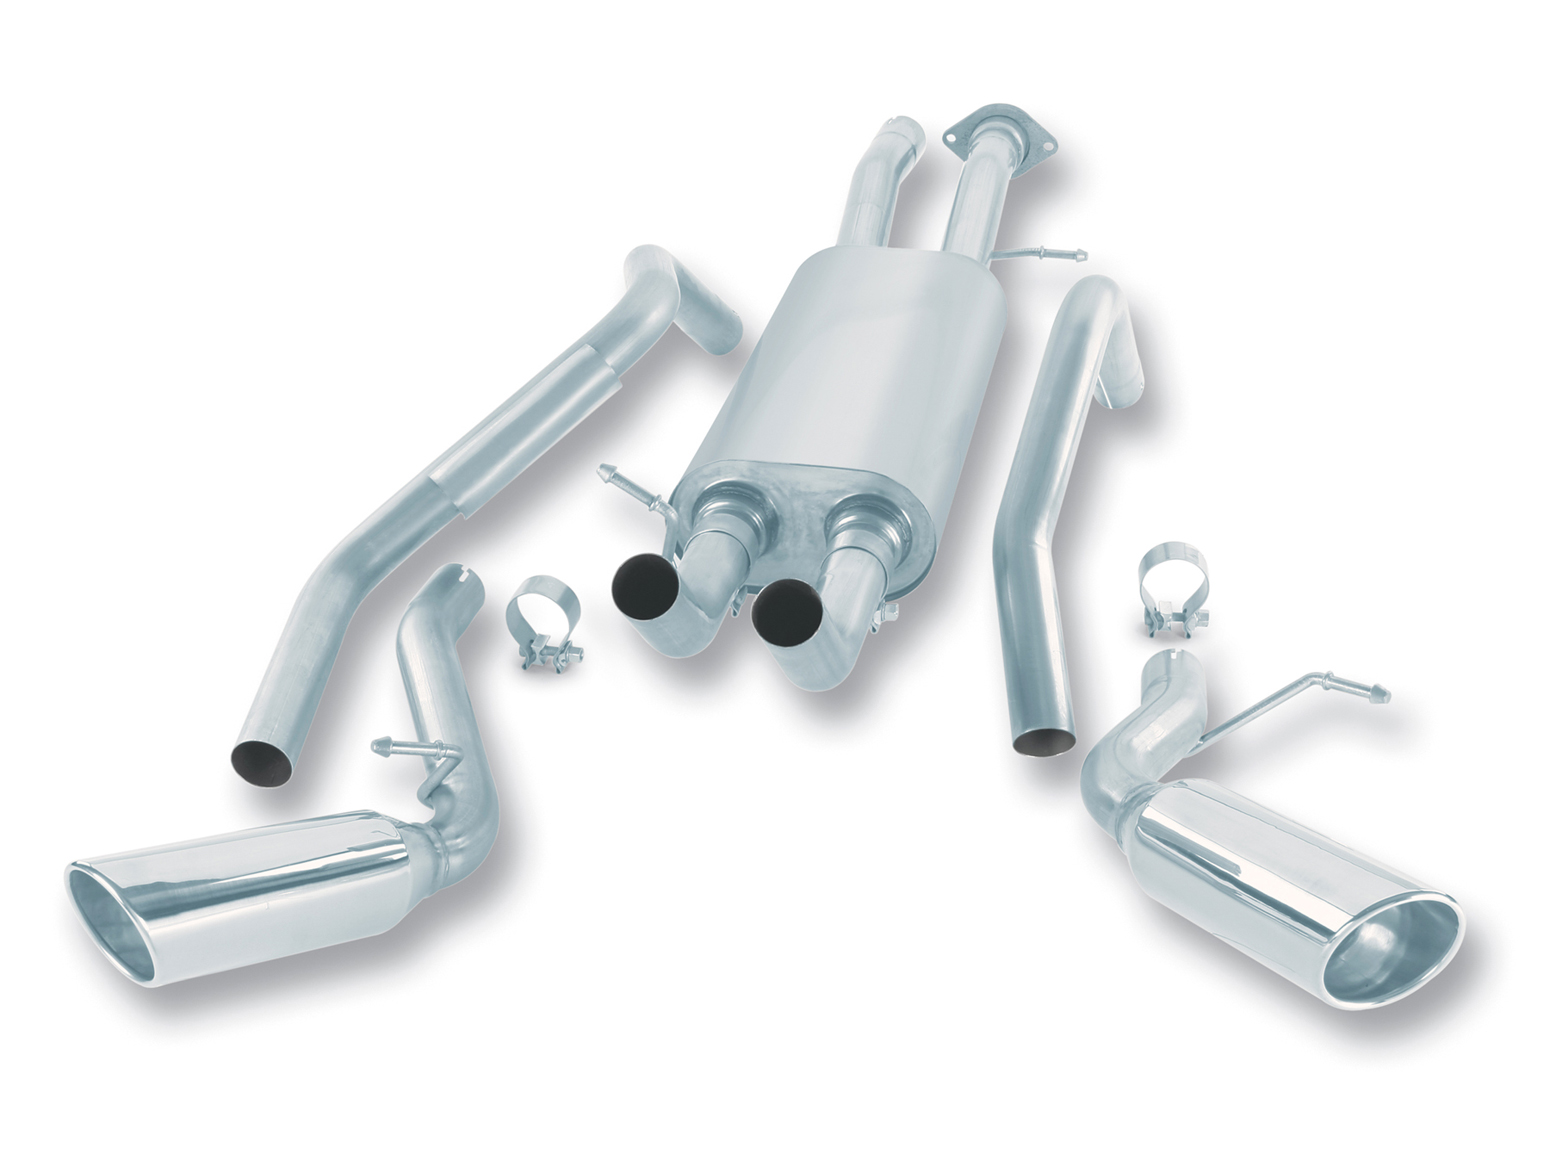 "Gmc Denali  2002-2004 Borla 2.5"", 2.25"" Cat-Back Exhaust System - Single Round Rolled Angle-Cut Lined Resonated"